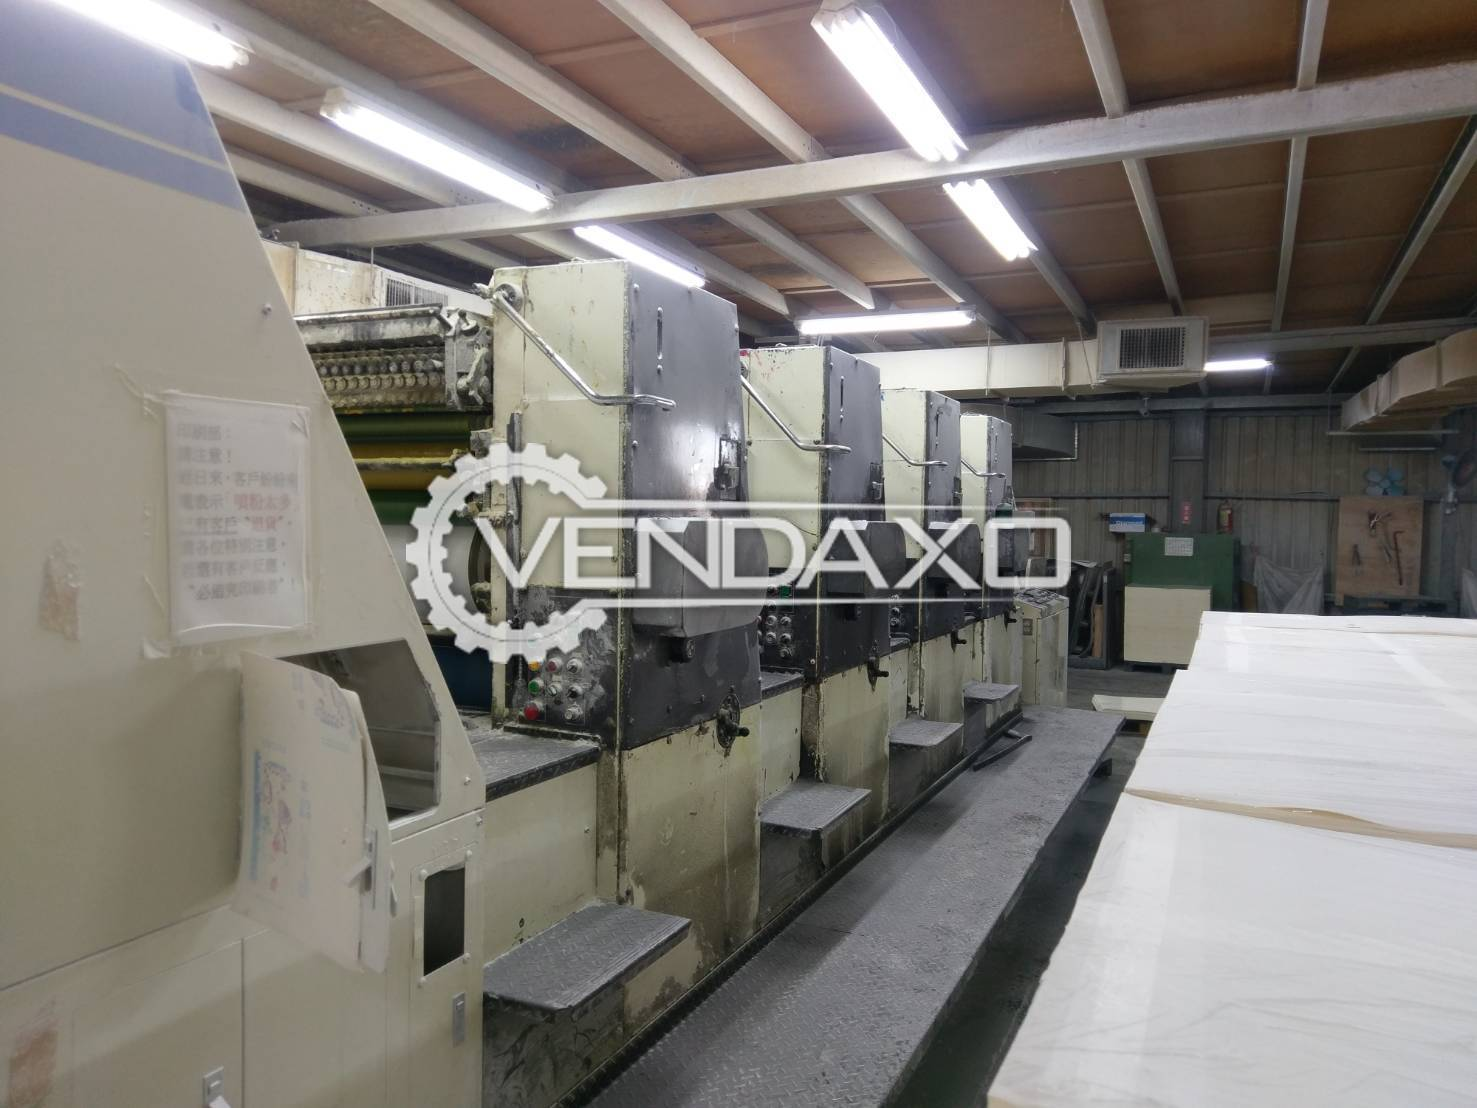 Mitsubishi Daiya 3E Offset Printing Machine - 28 x 40 Inch, 4 Color